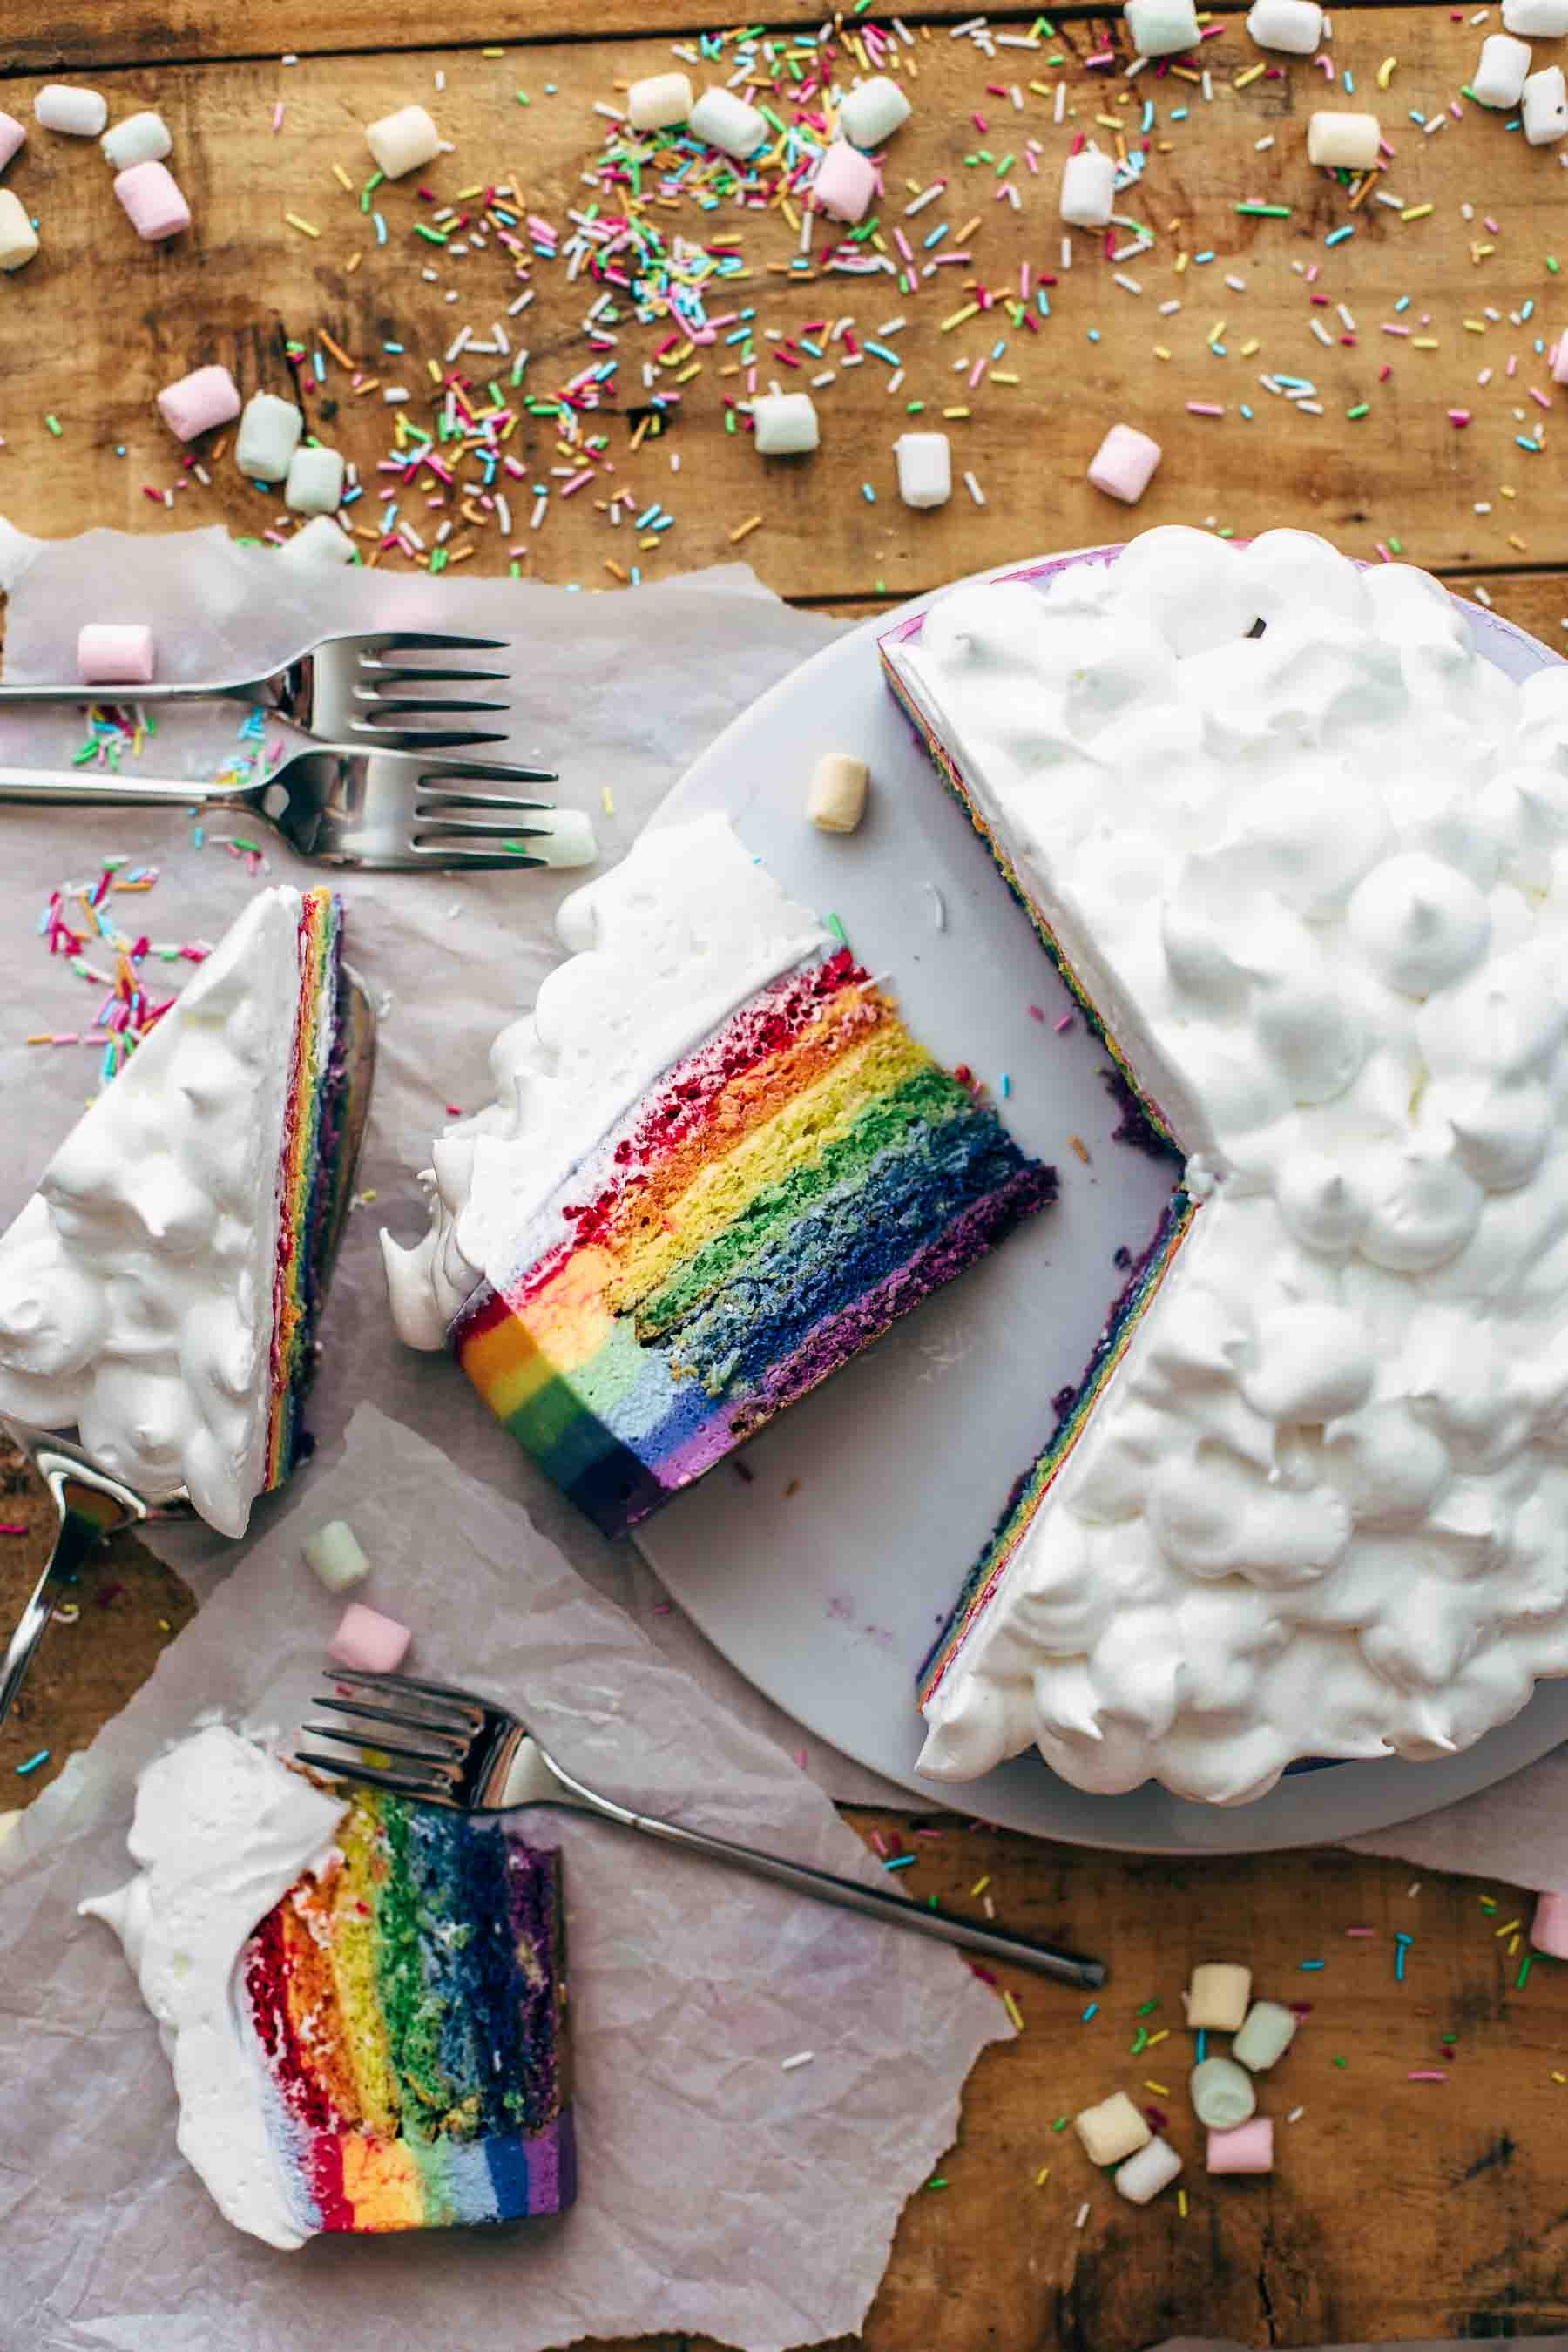 How To Make A Rainbow Cake Recipe Video Also The Crumbs Please